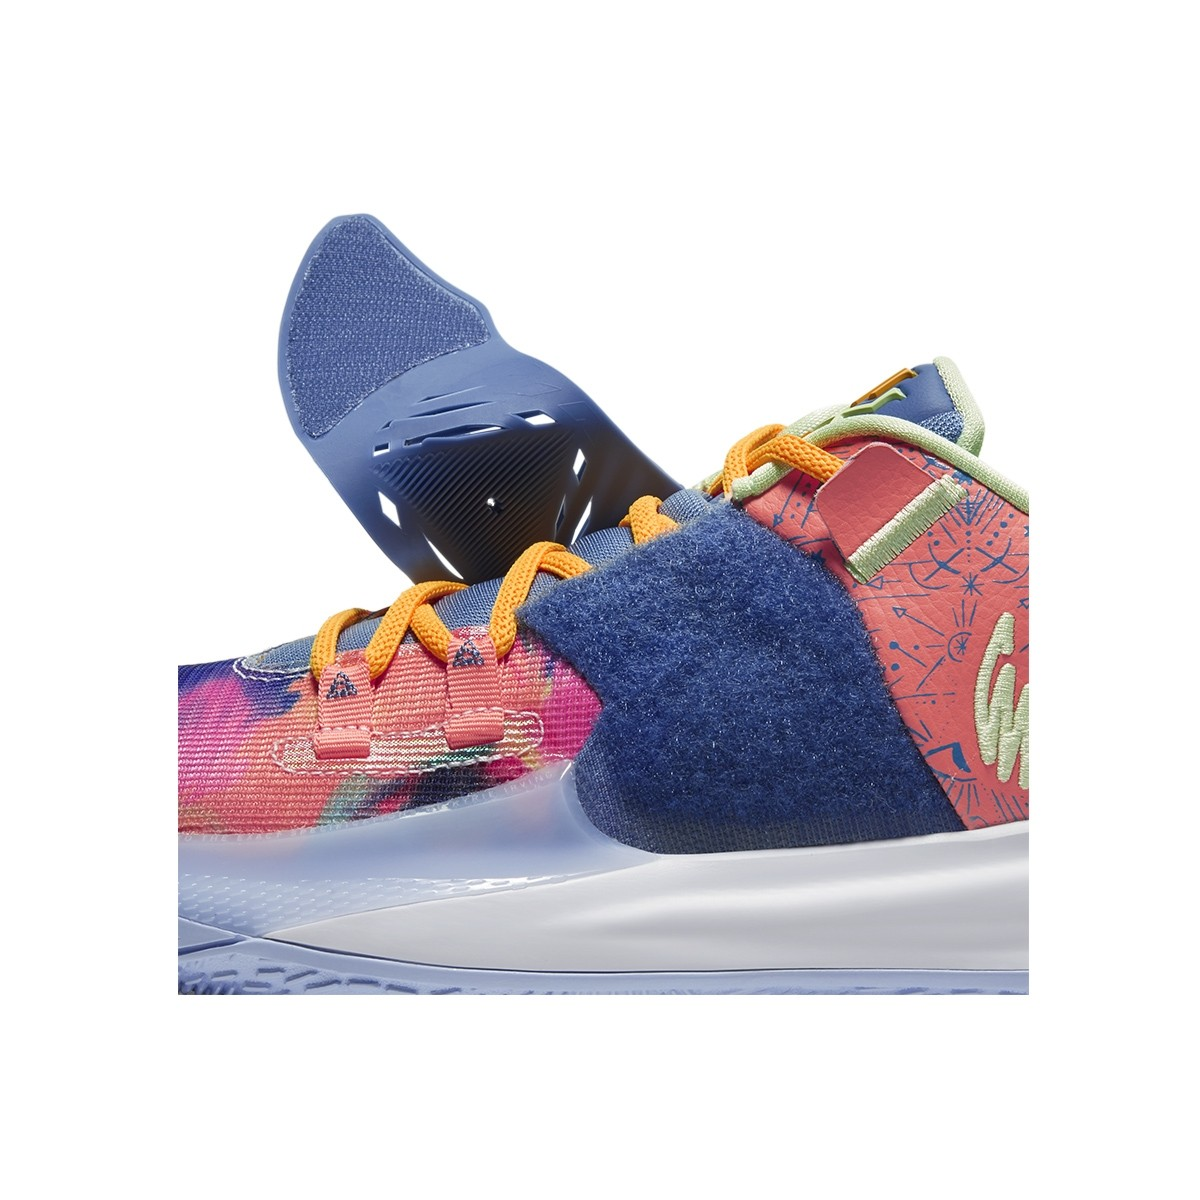 Nike Kyrie Low 3 'Harmony'-CJ1286-600